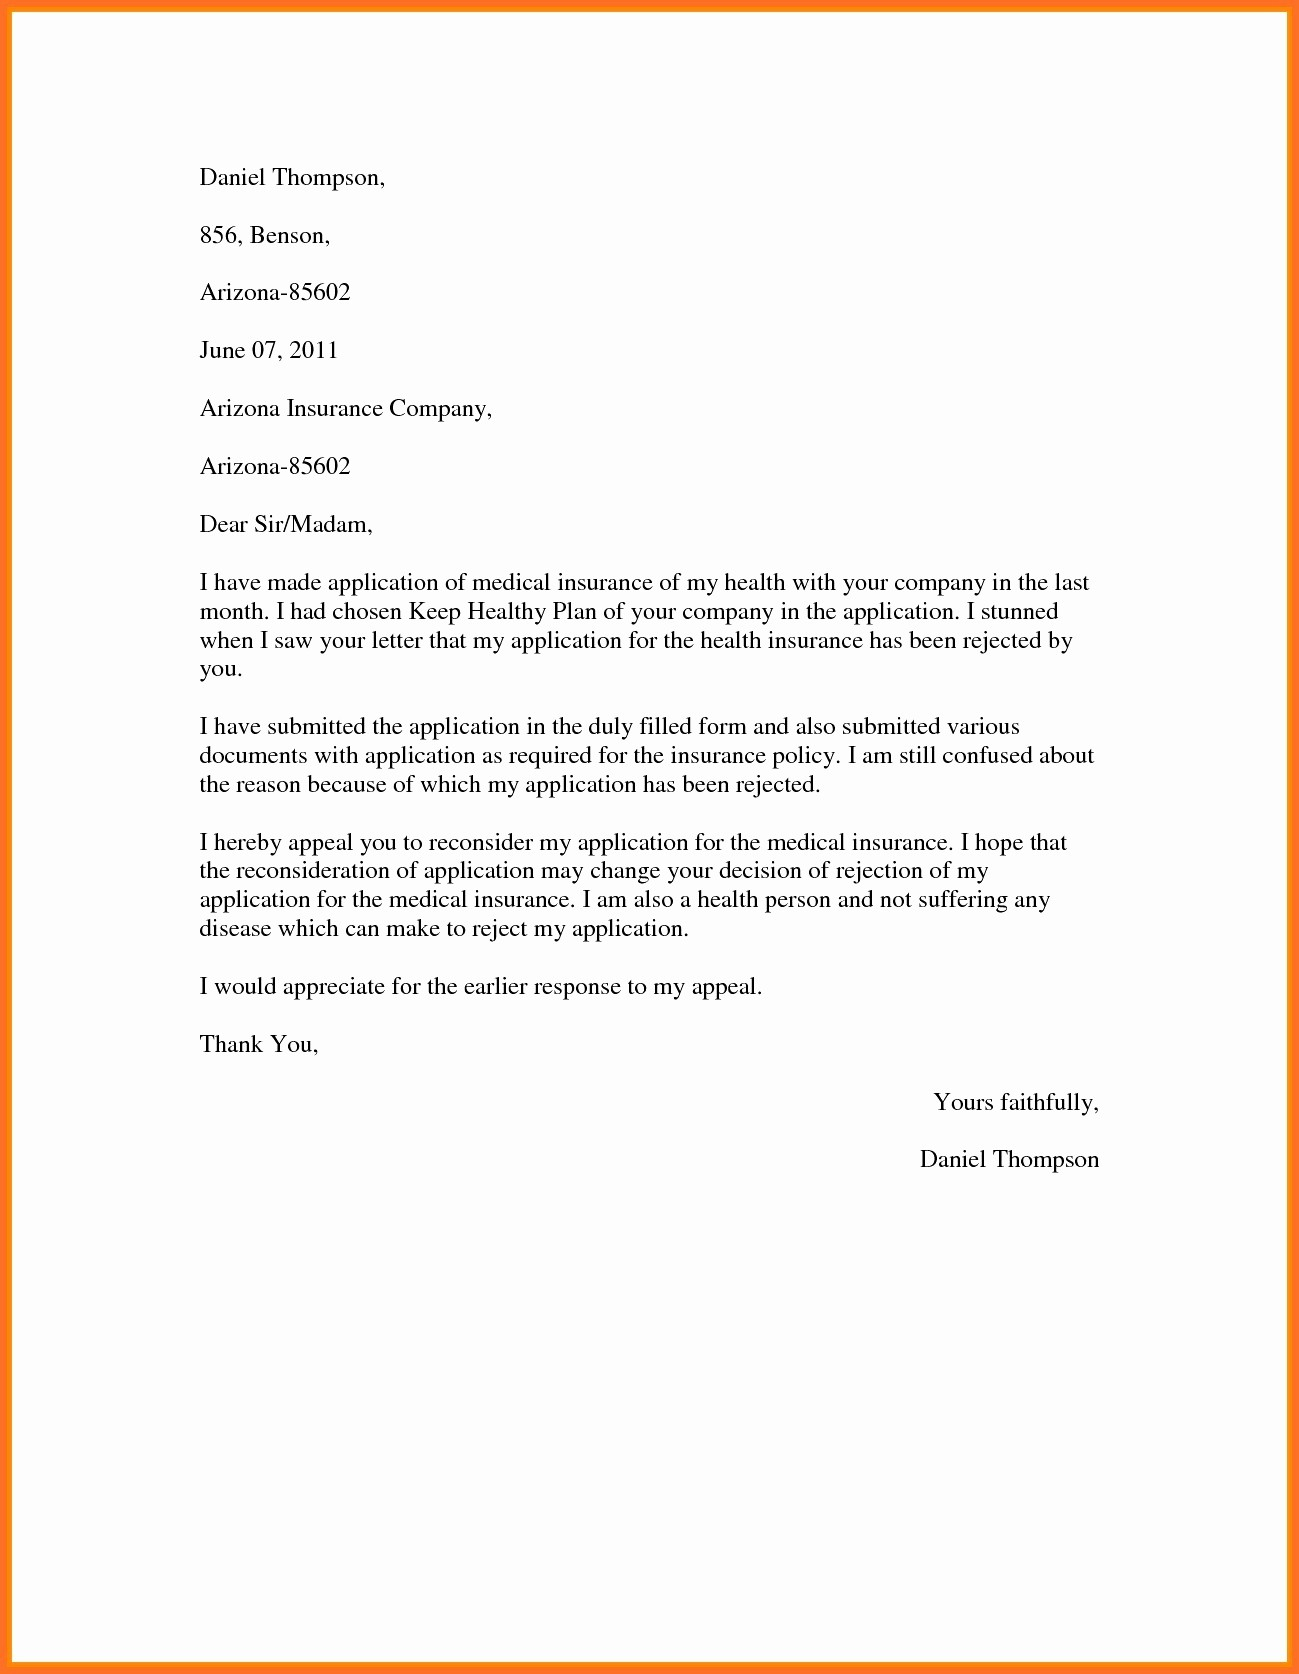 Proof Of Health Insurance Letter Template - Professional Appeal Letter format New Sample Proof Health Insurance